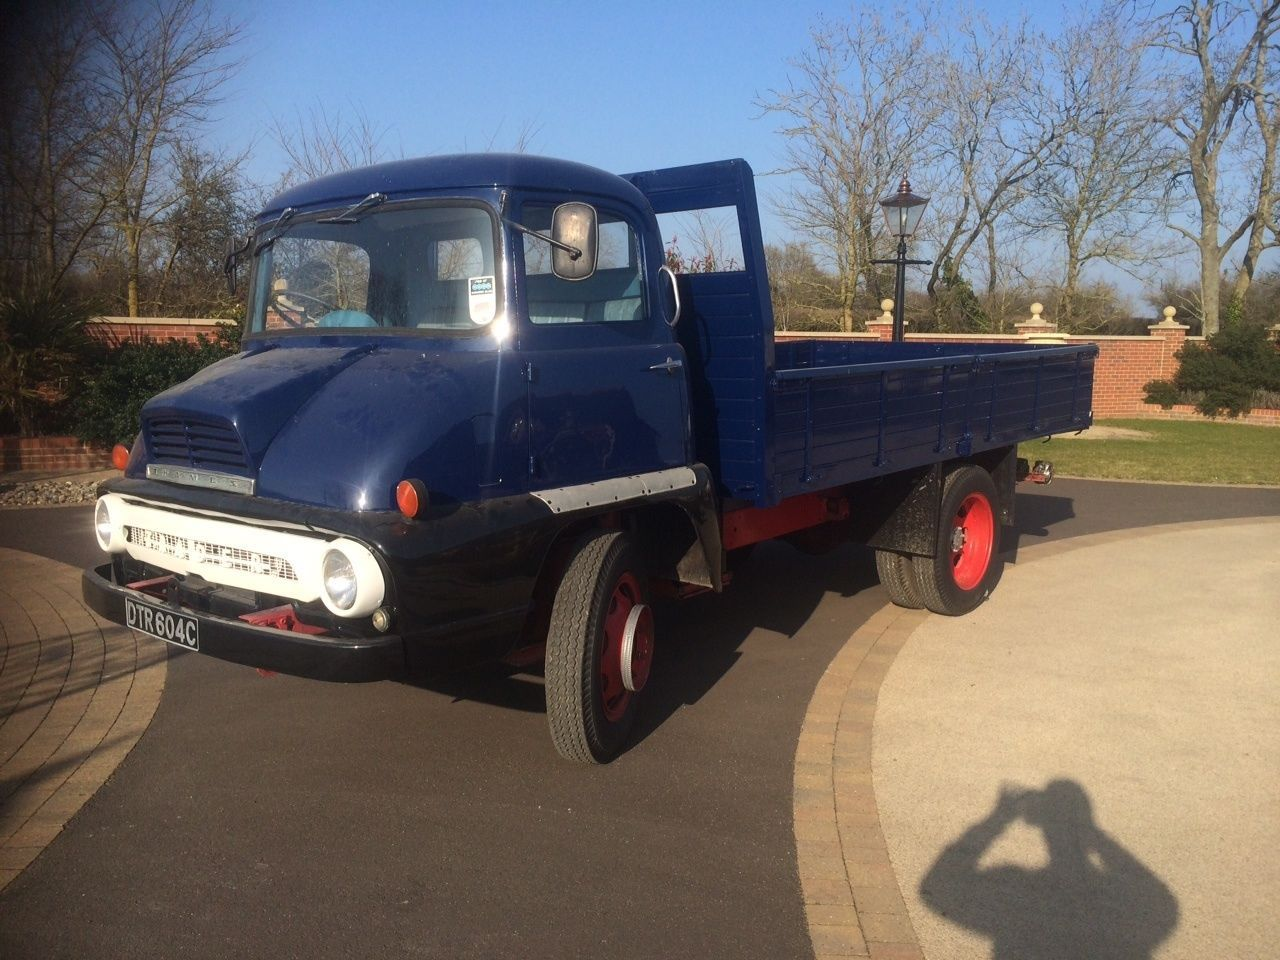 1955 ford f100 trucks for sale used cars on oodle autos post - 1965 C Reg Ford Thames Trader 4cylinder Diesel Engine Blue Black Classic Truck